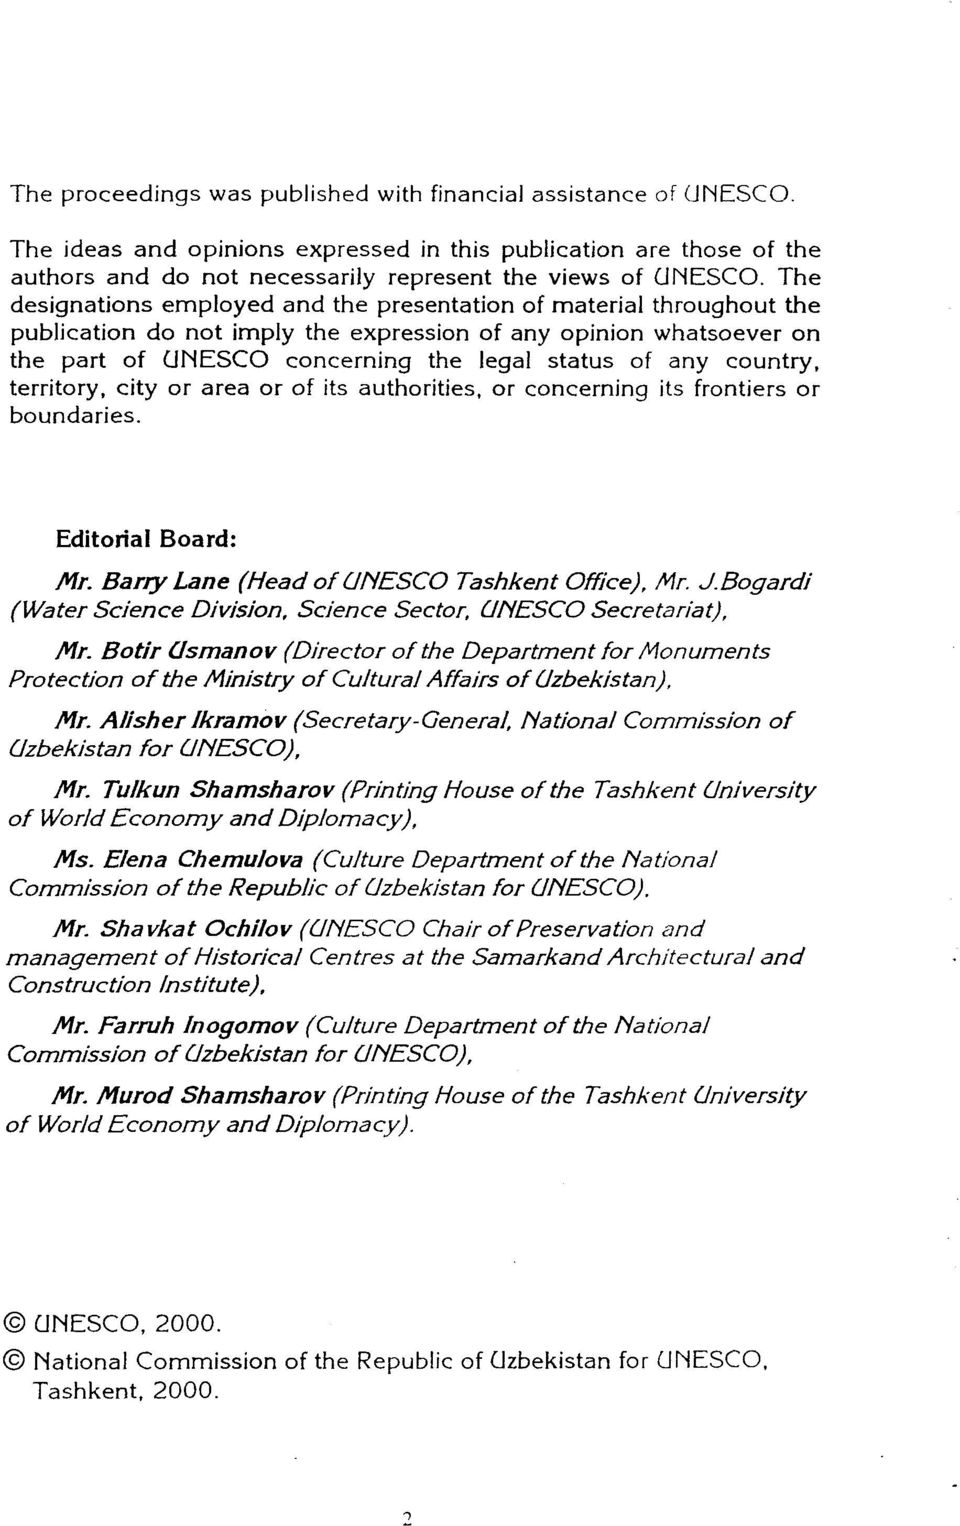 country, territory, city or area or of its authorities, or concerning its frontiers or boundaries. Editorial Board: Mr. Barry Lane (Head of UNESCO Tashkent OfZce), Mr. J.